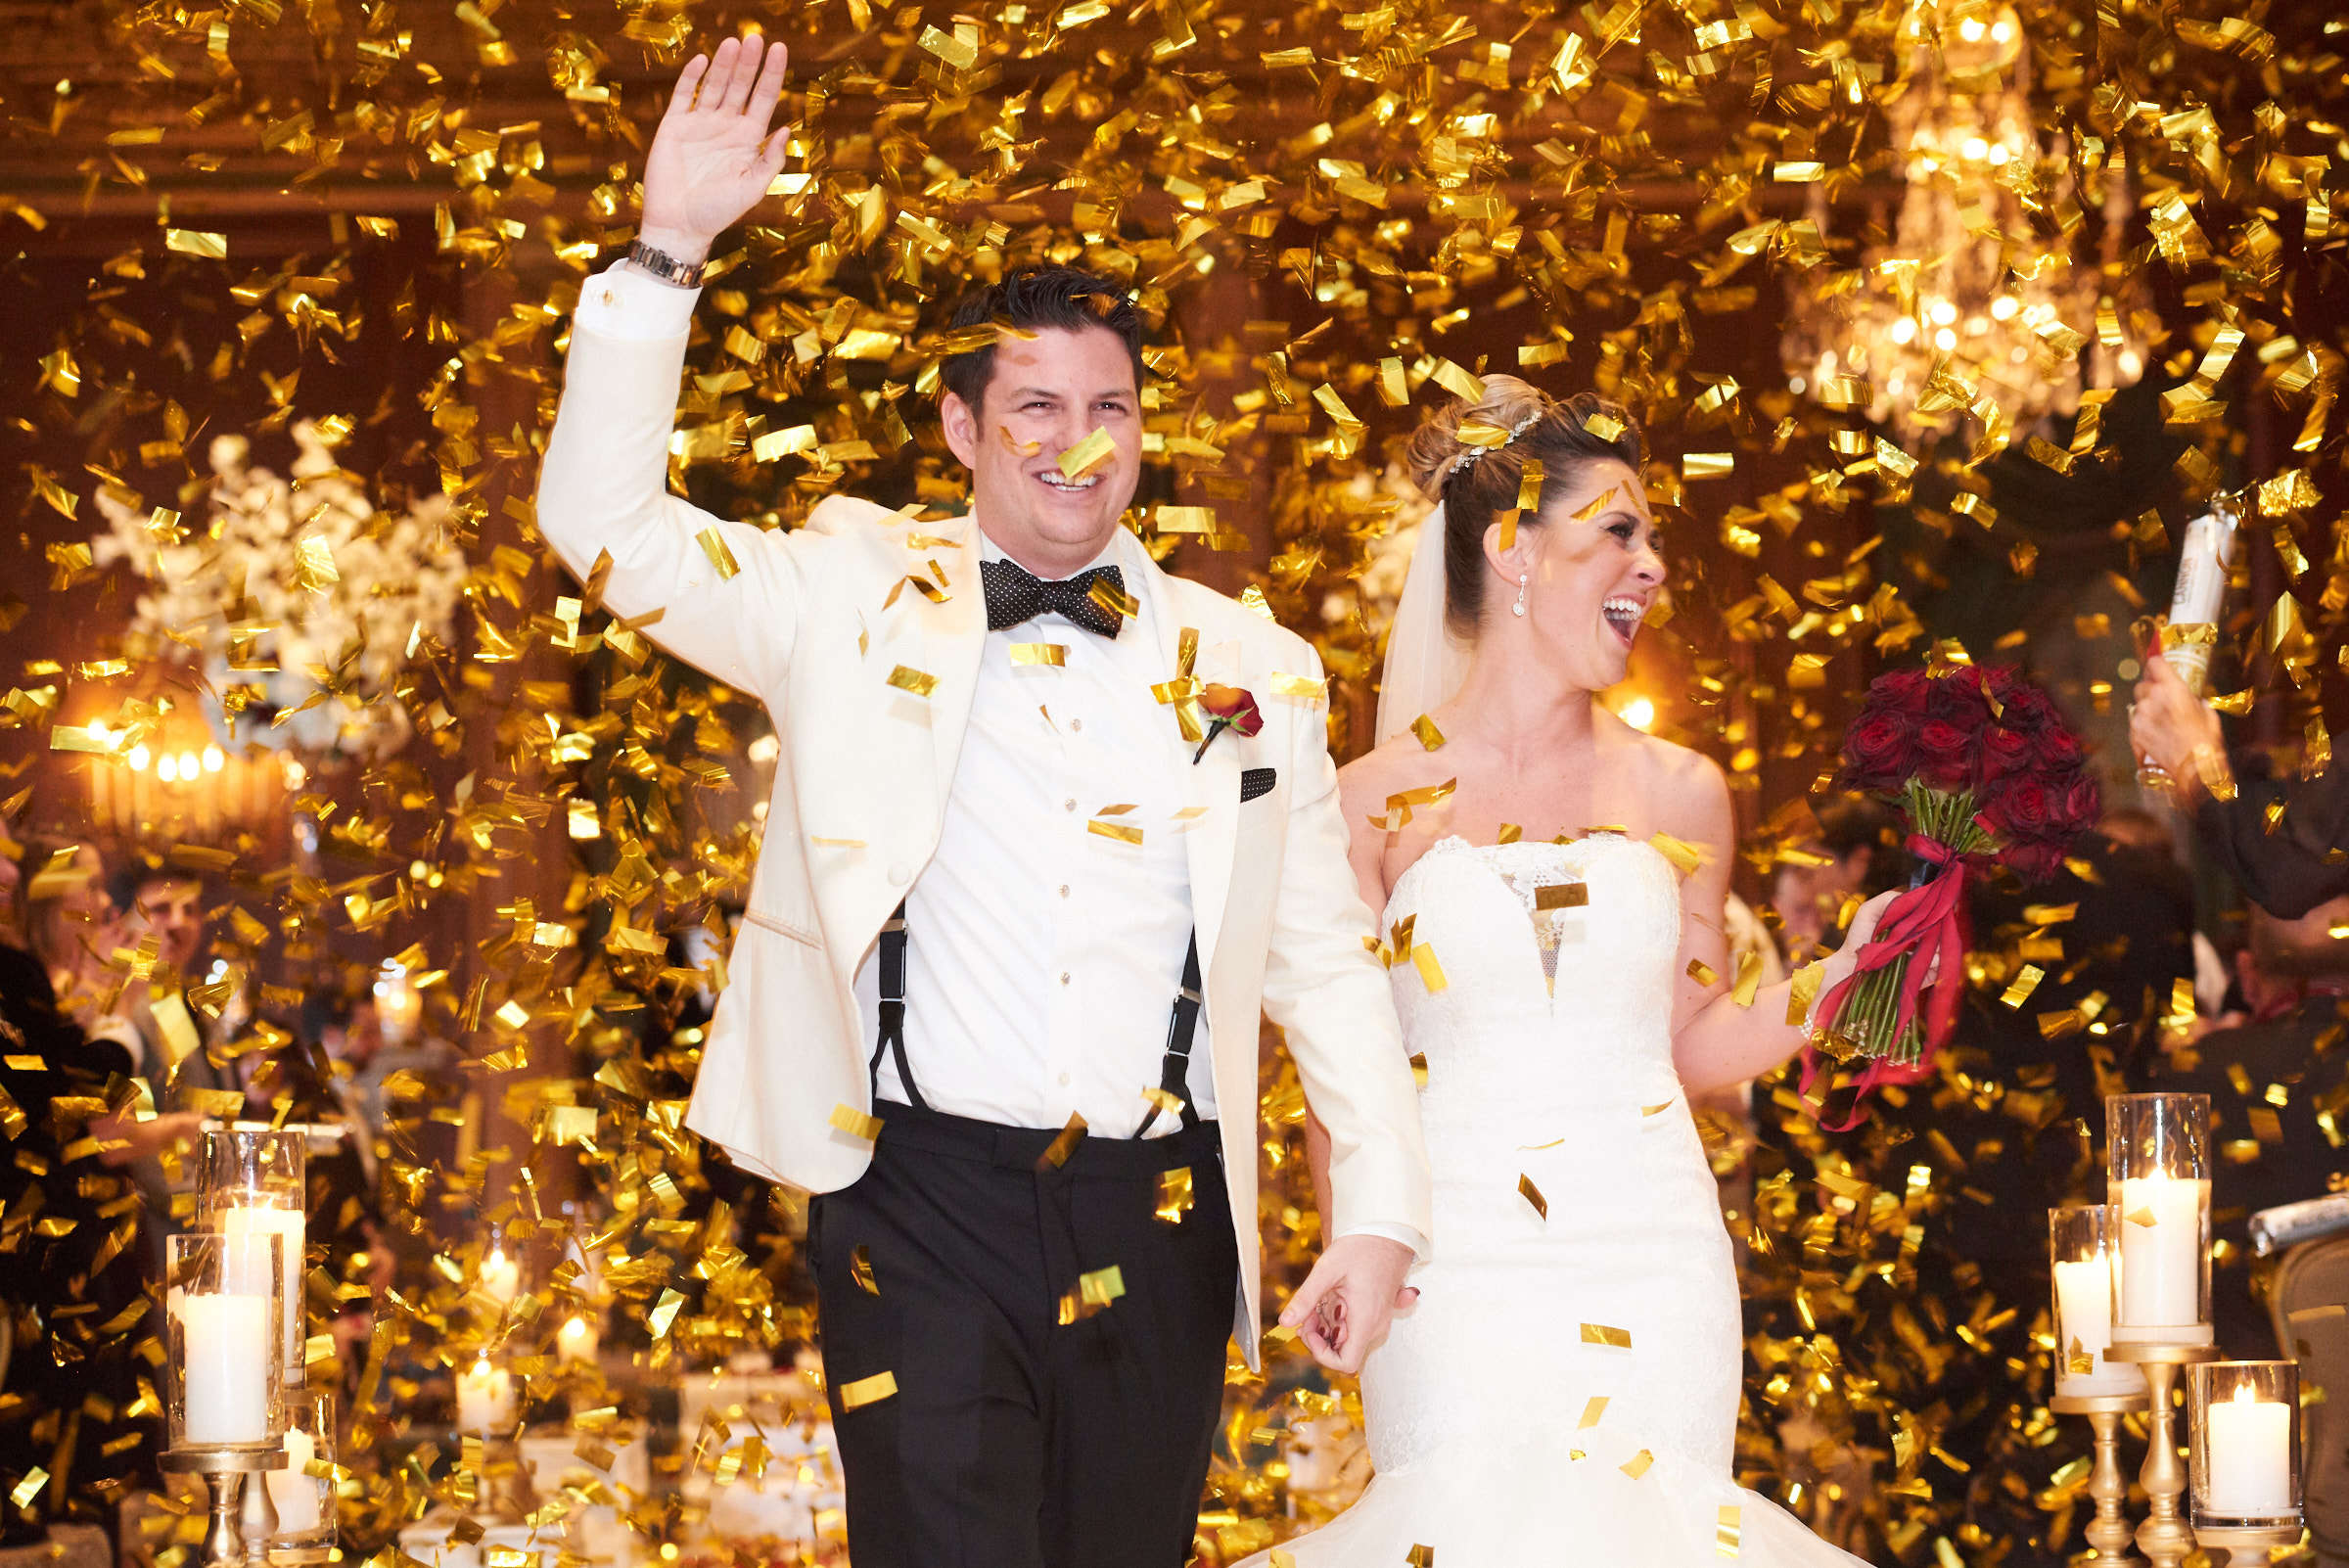 Wedding ceremony with gold confetti poppers